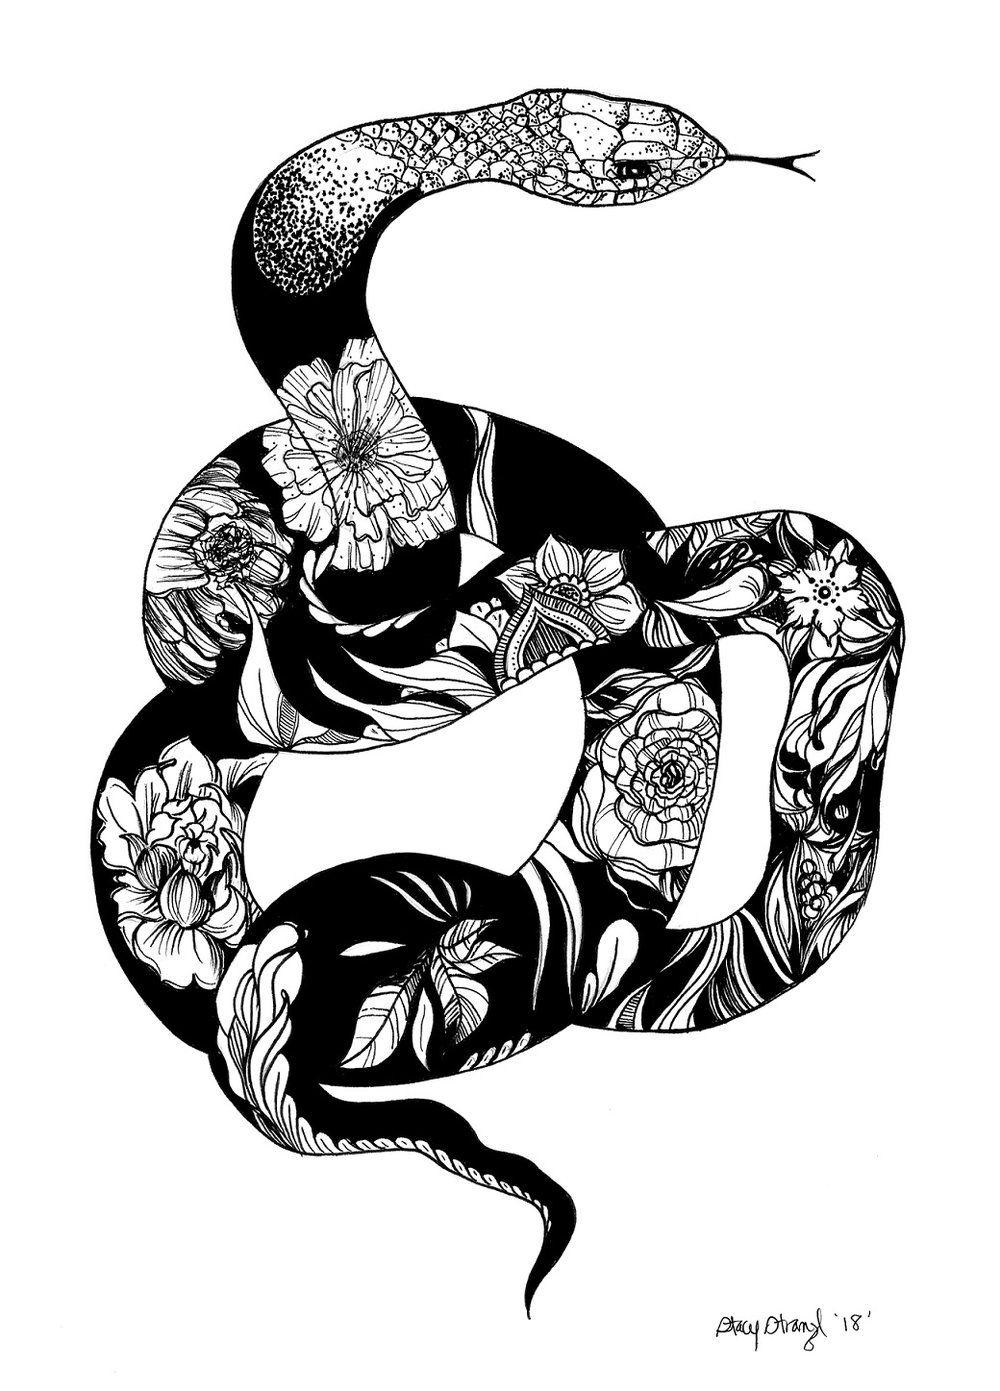 Snake illustration floral illustration black and white